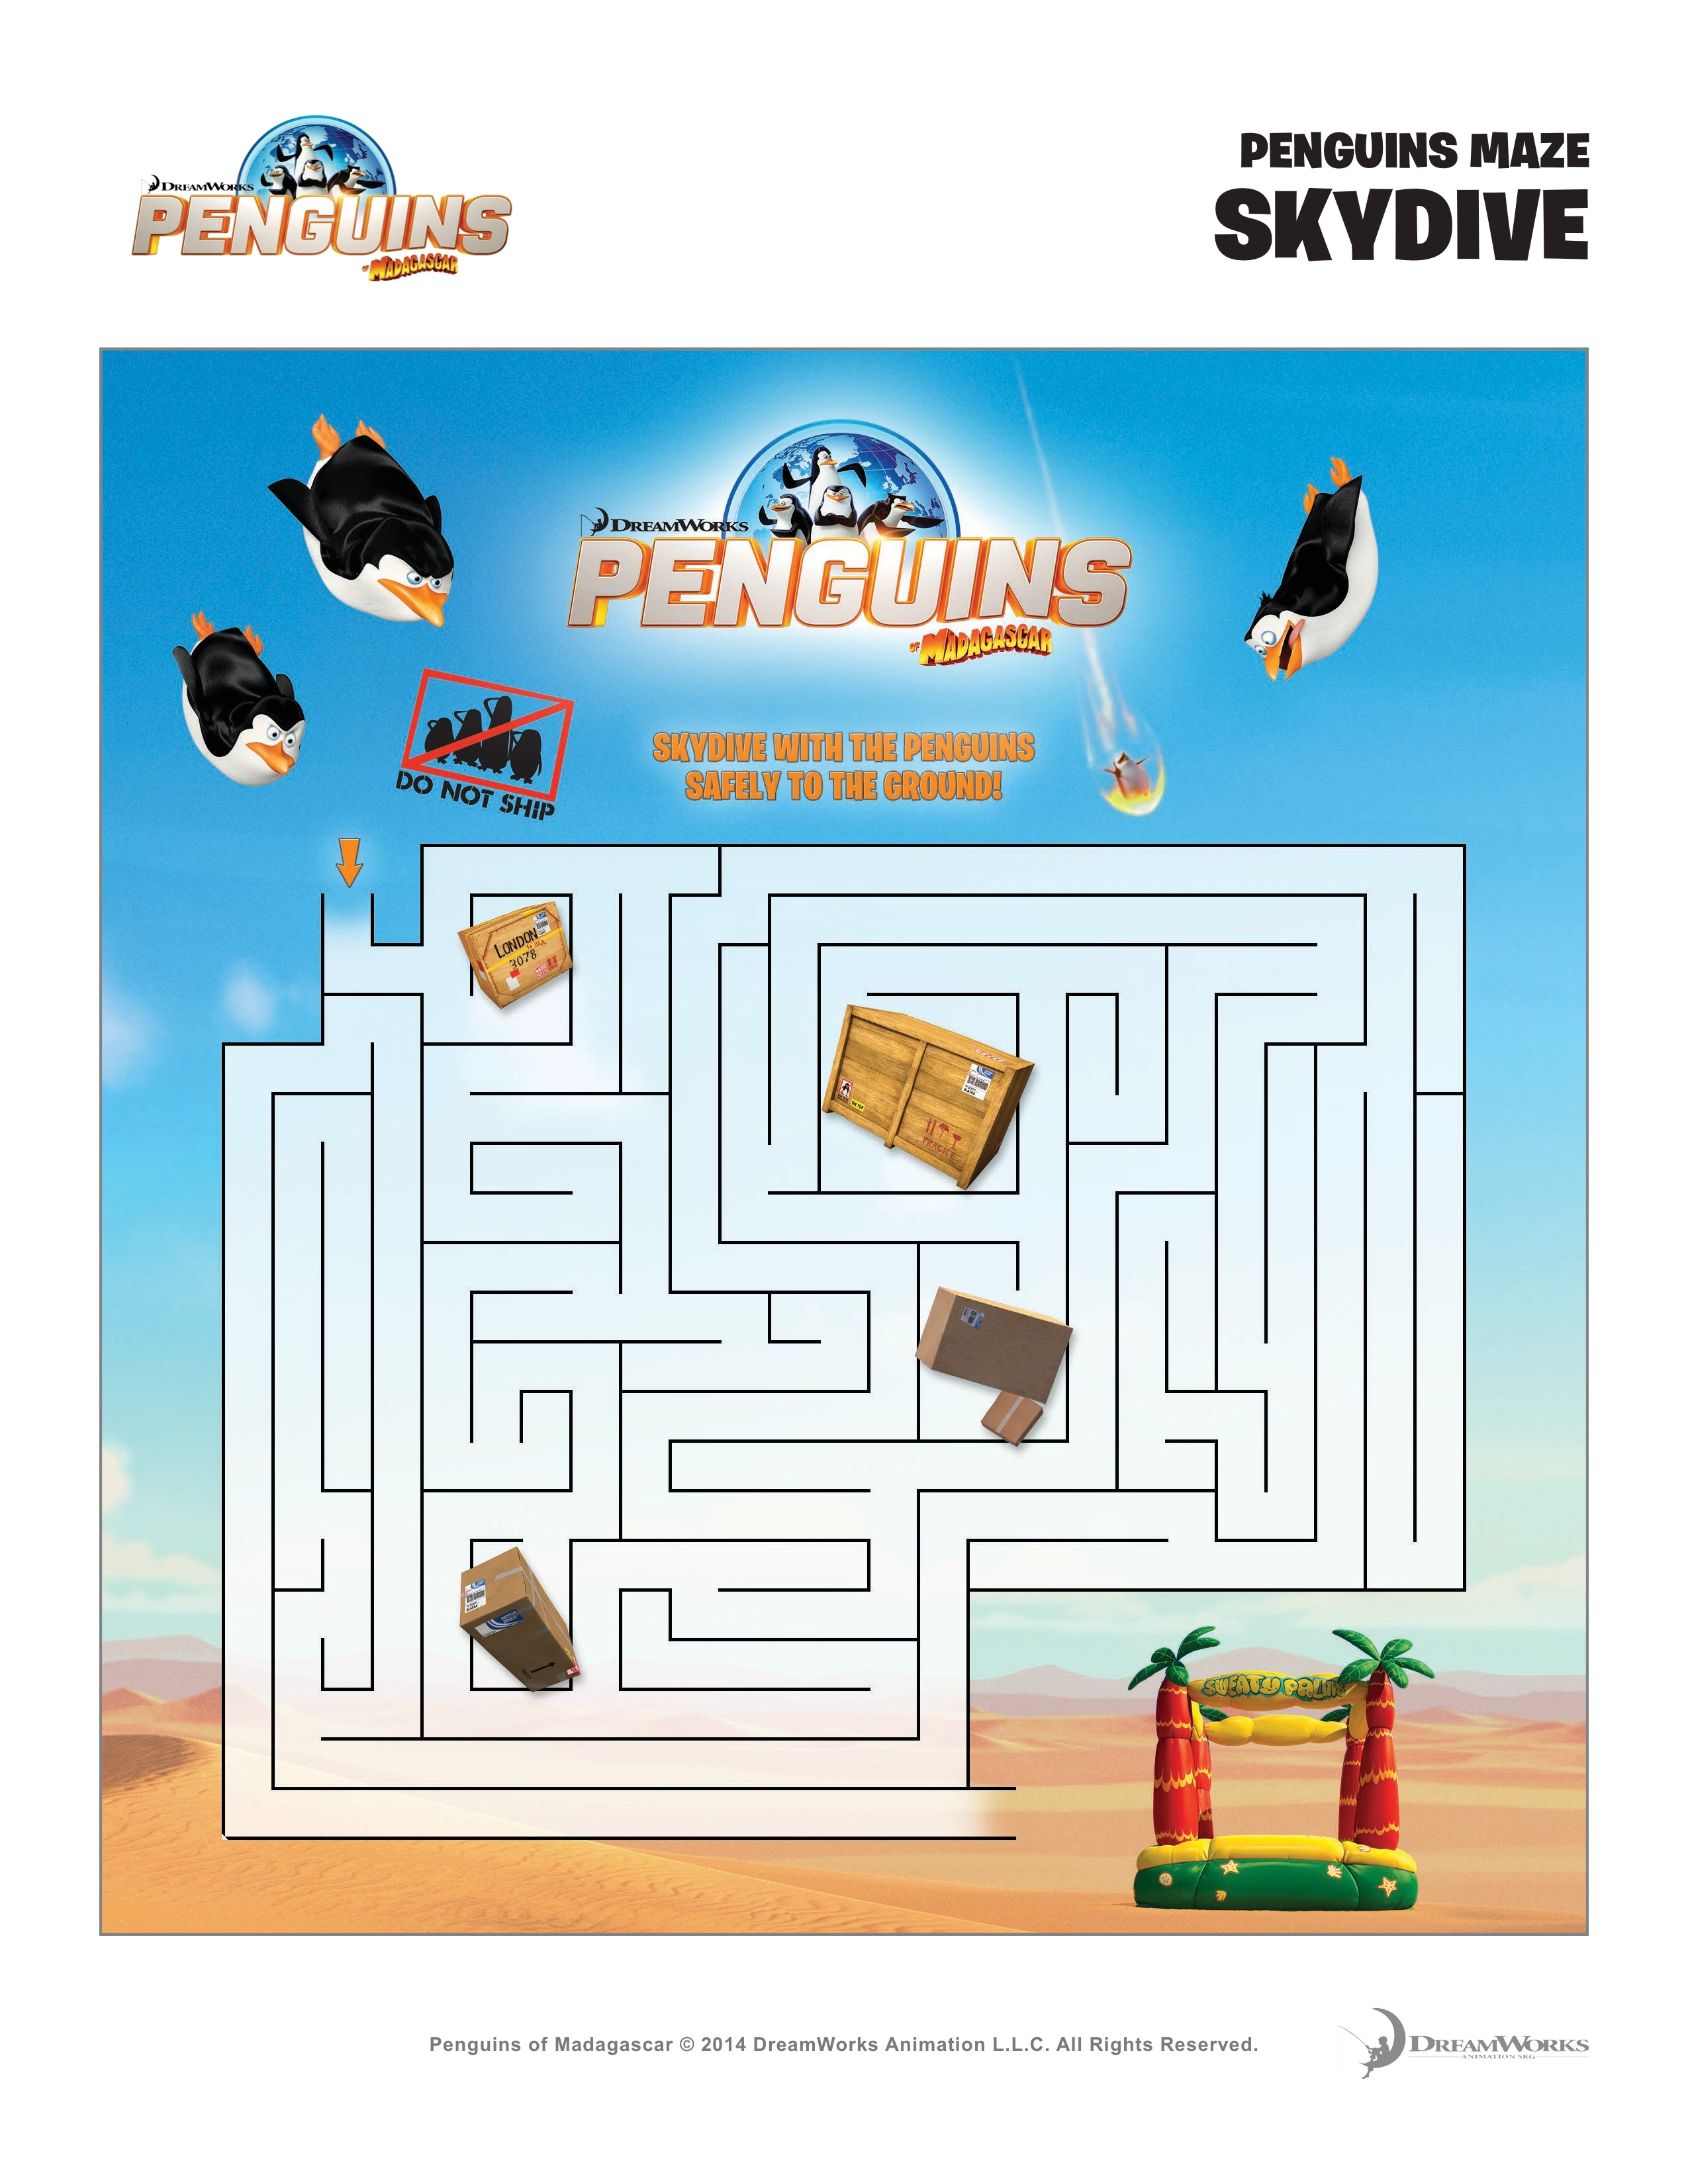 Free Printable Penguins of Madagascar Activity Sheets! {+ Giveaway!}